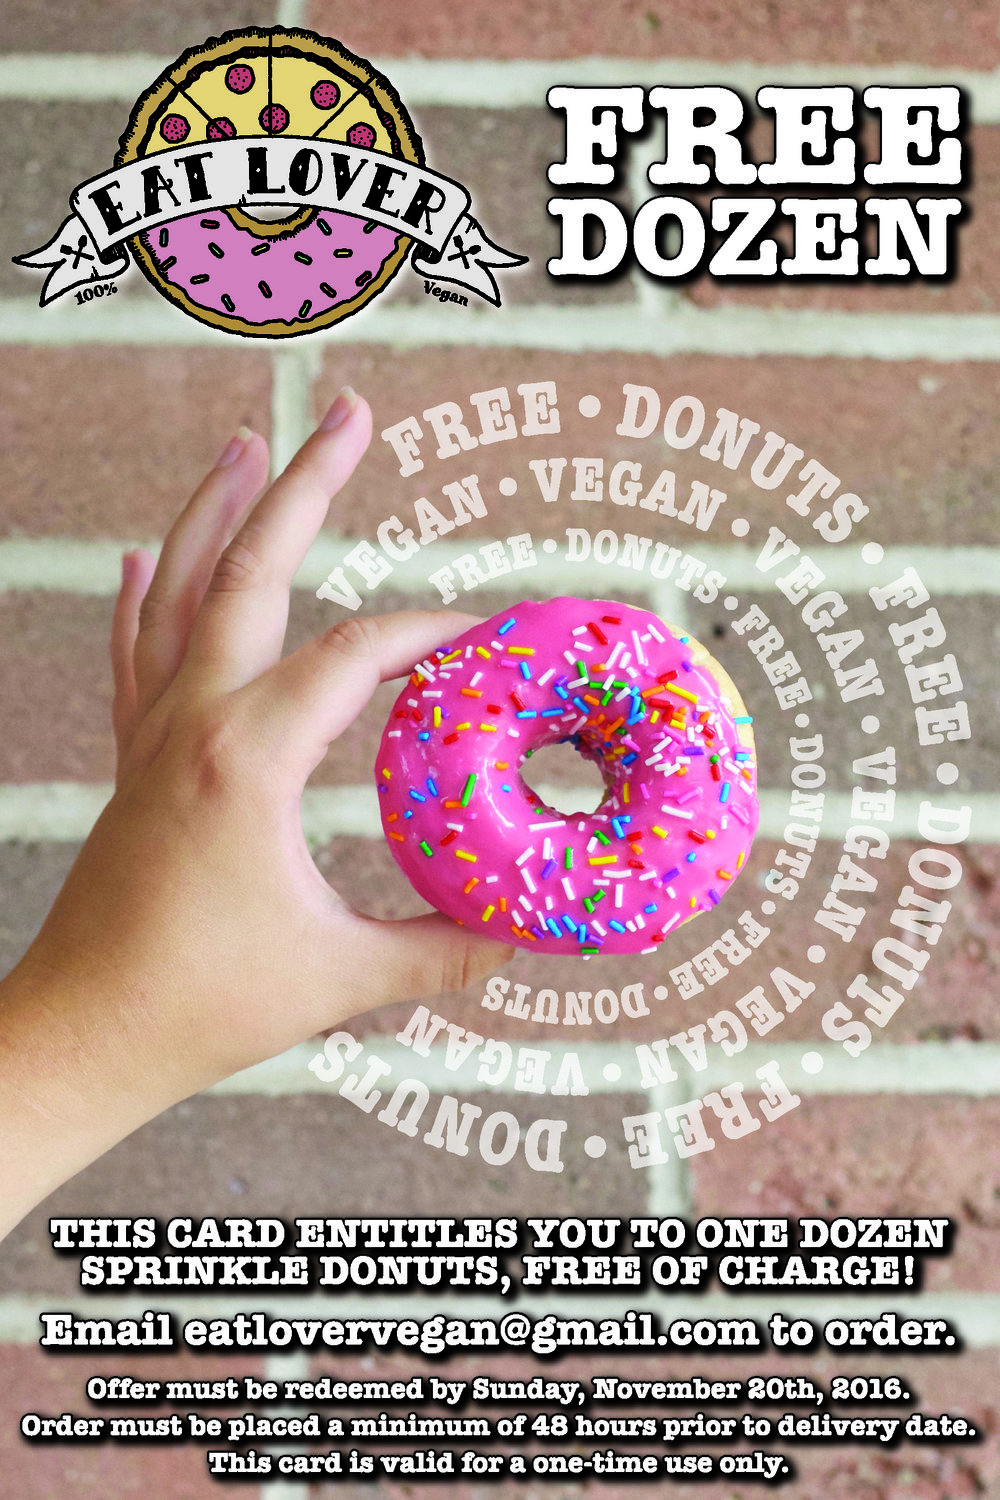 eat lover - FREE DOZEN - web.jpg